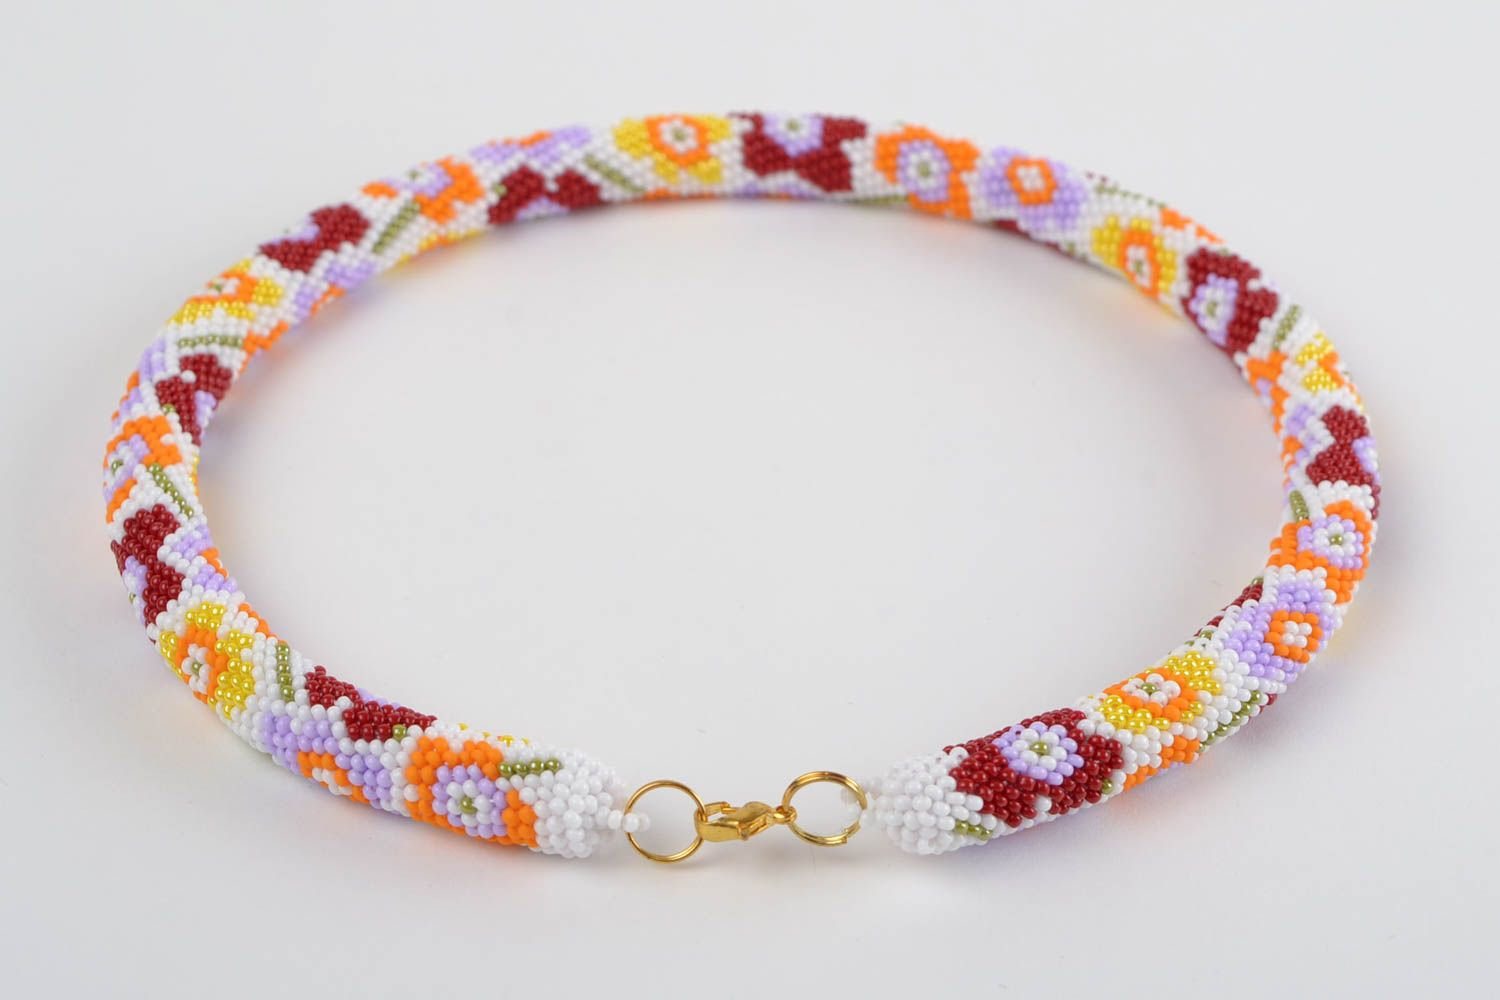 Handmade beaded cord necklace seed beads necklace stylish accessory for women photo 5